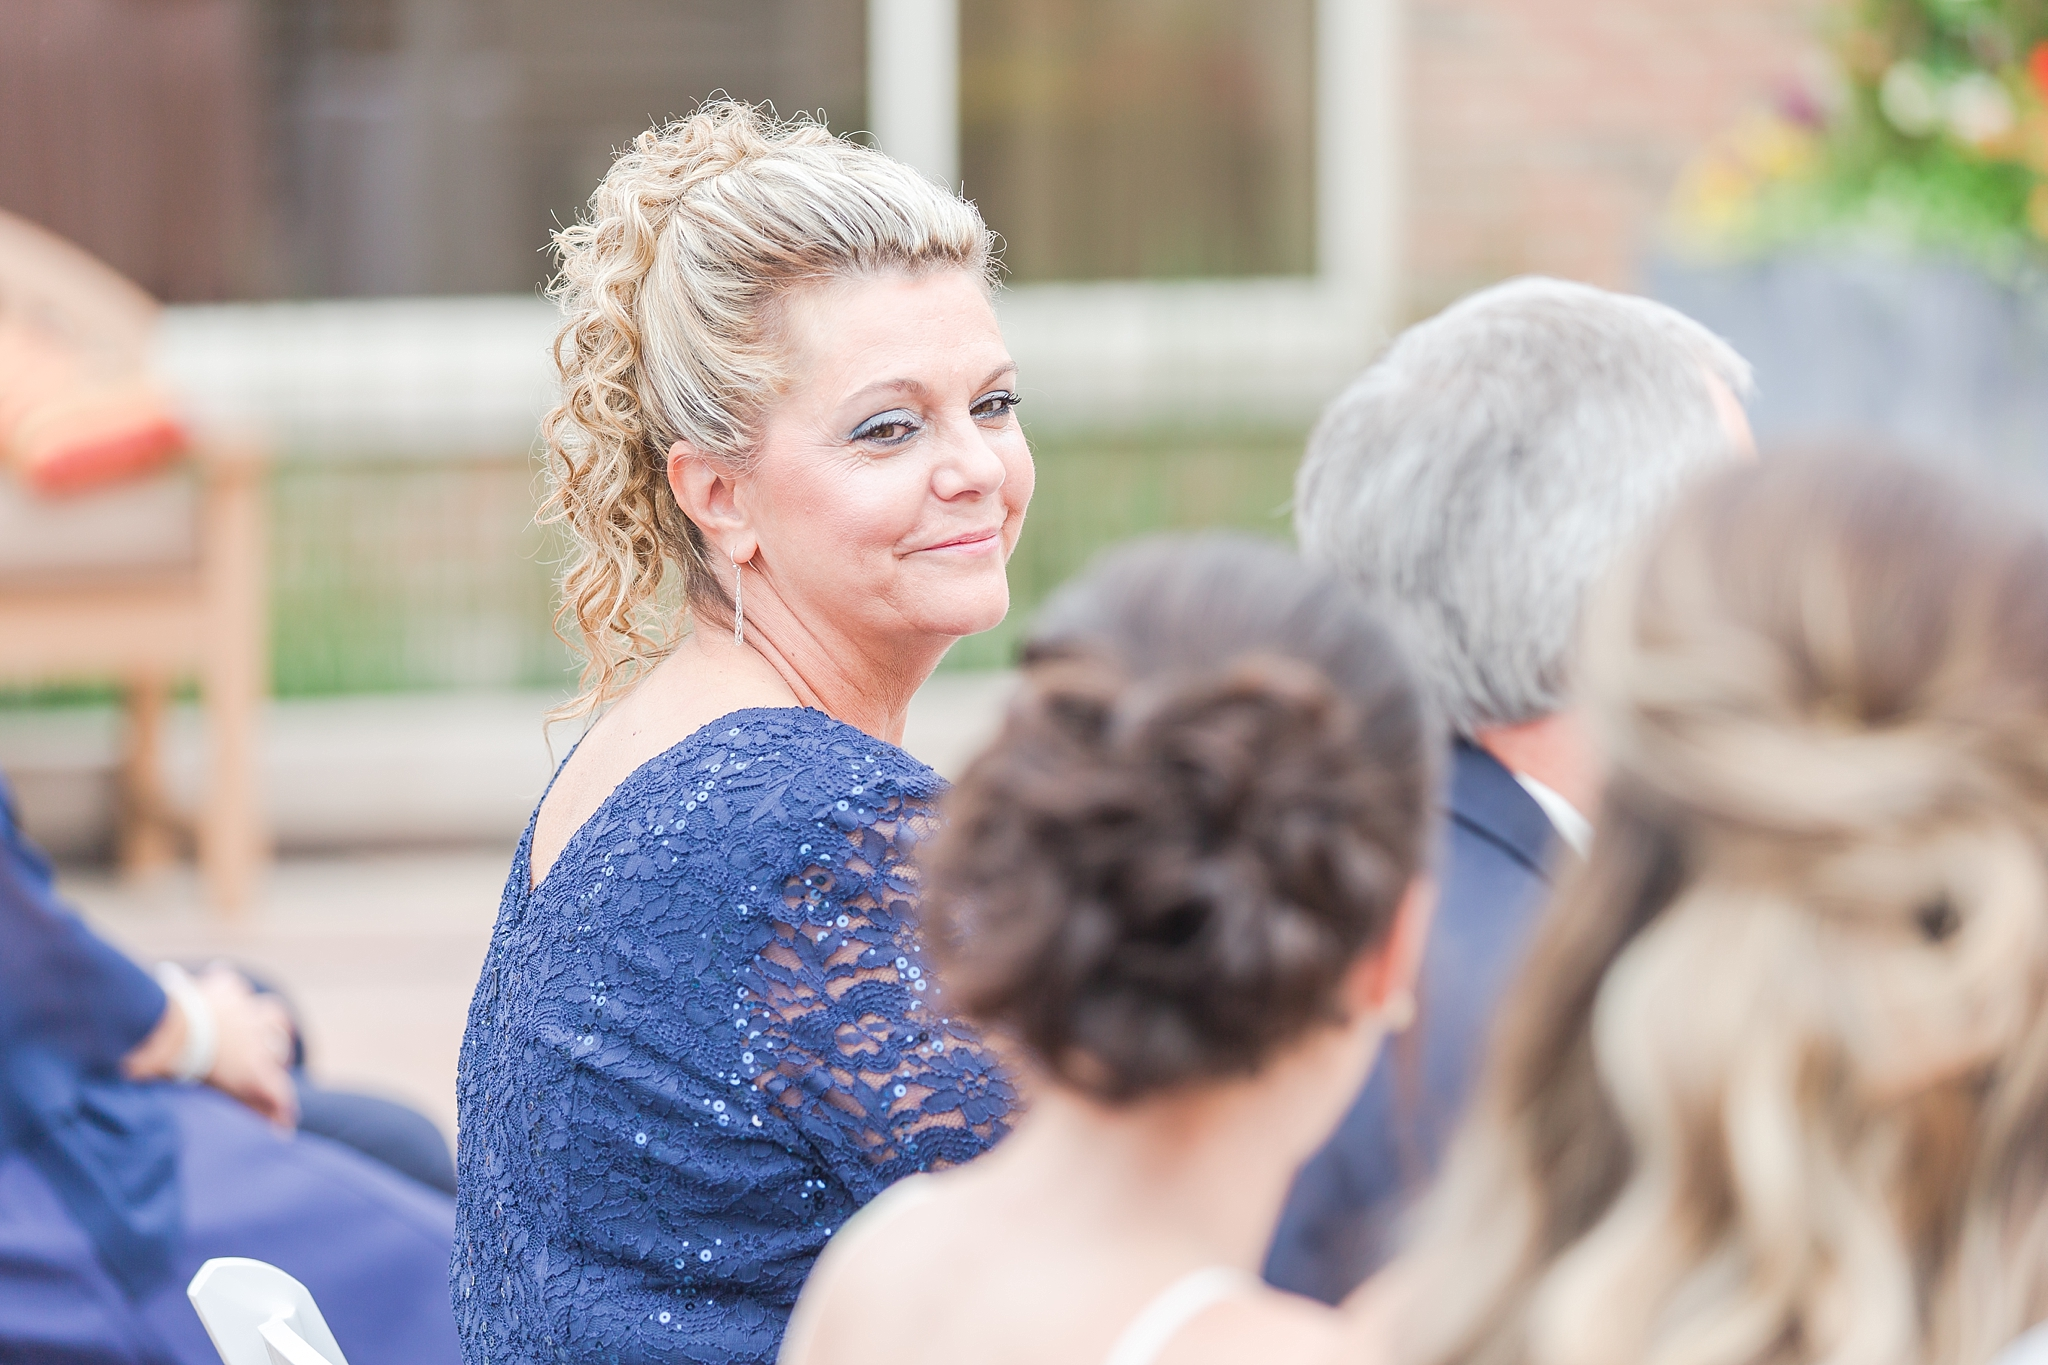 candid-romantic-wedding-photos-at-the-h-hotel-in-midland-michigan-by-courtney-carolyn-photography_0073.jpg